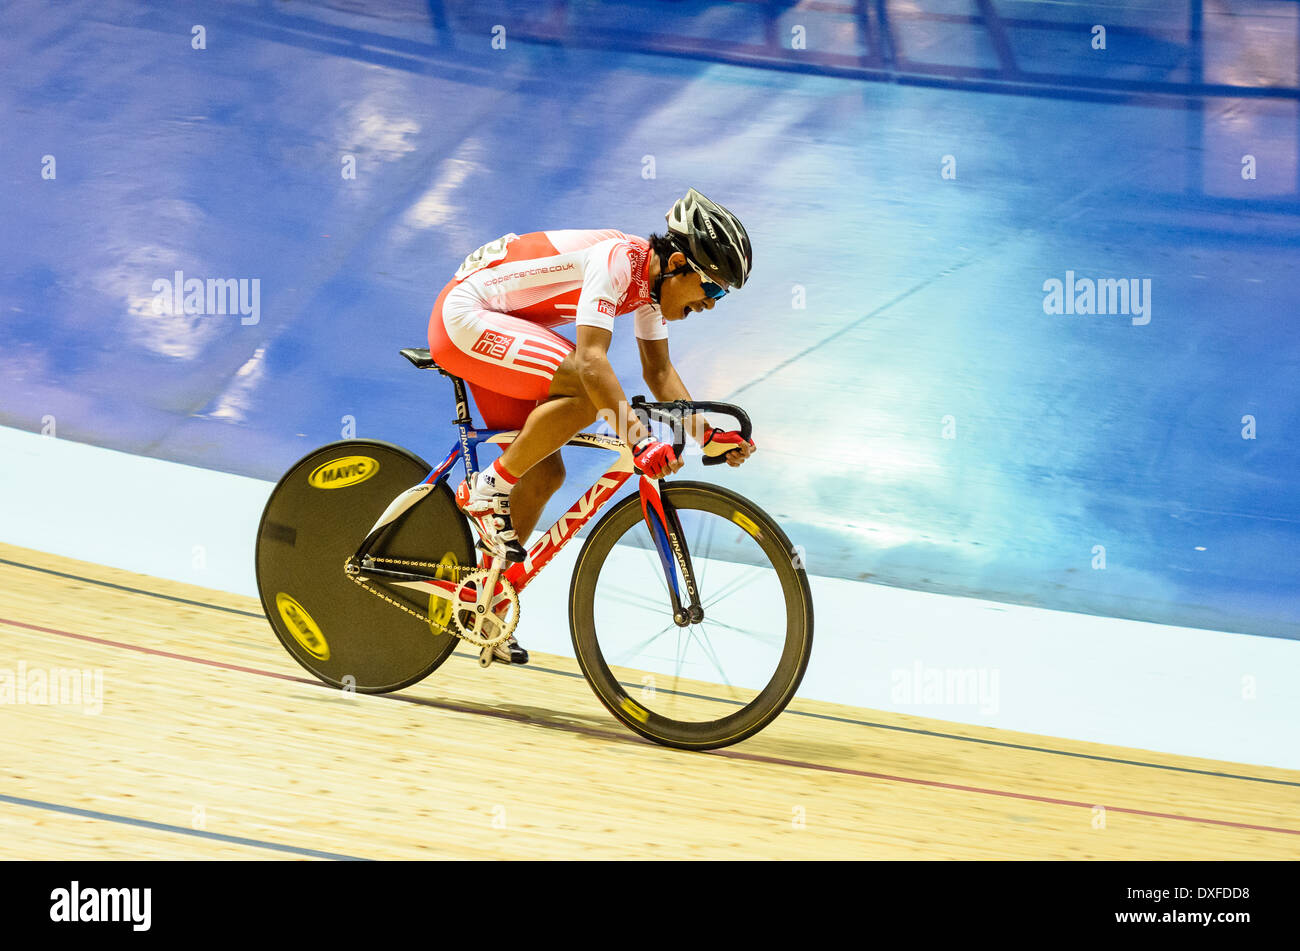 Germain Burton racing Revolution Serie trifft im Manchester Velodrome oder National Cycling Centre Stockbild